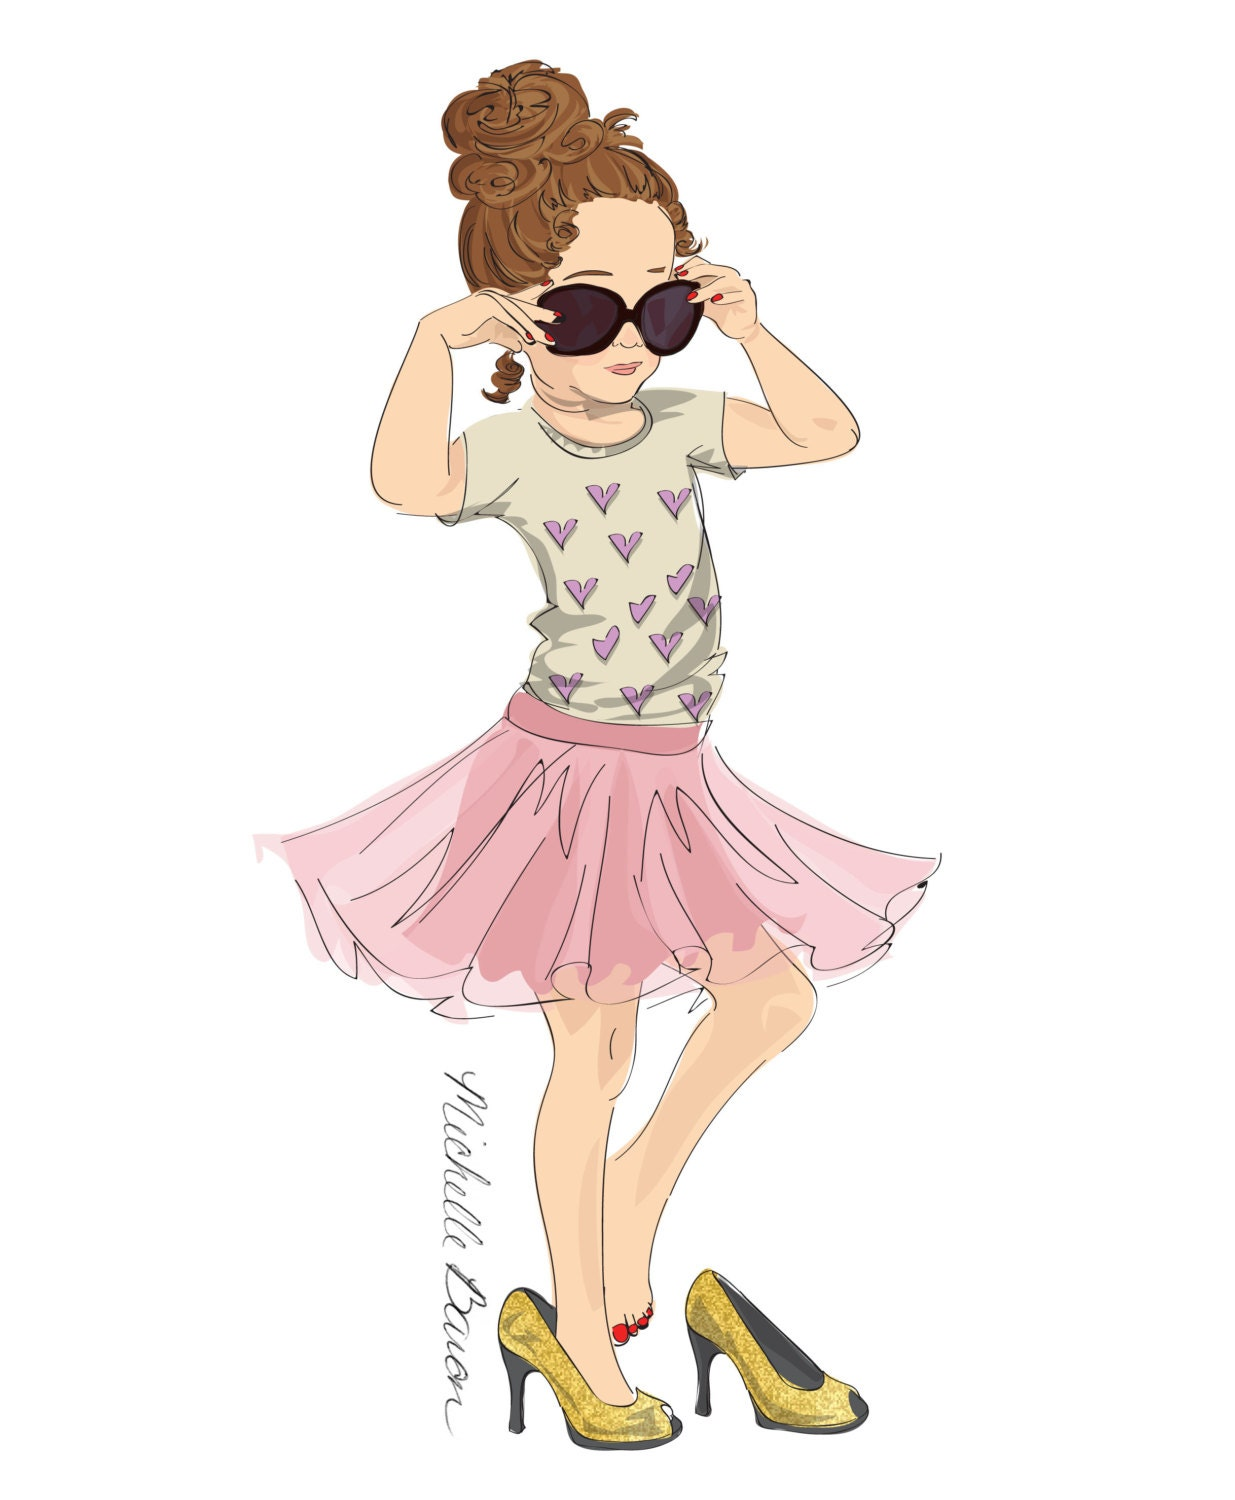 11 By 14 Children S Fashion Illustration Wall Art Art